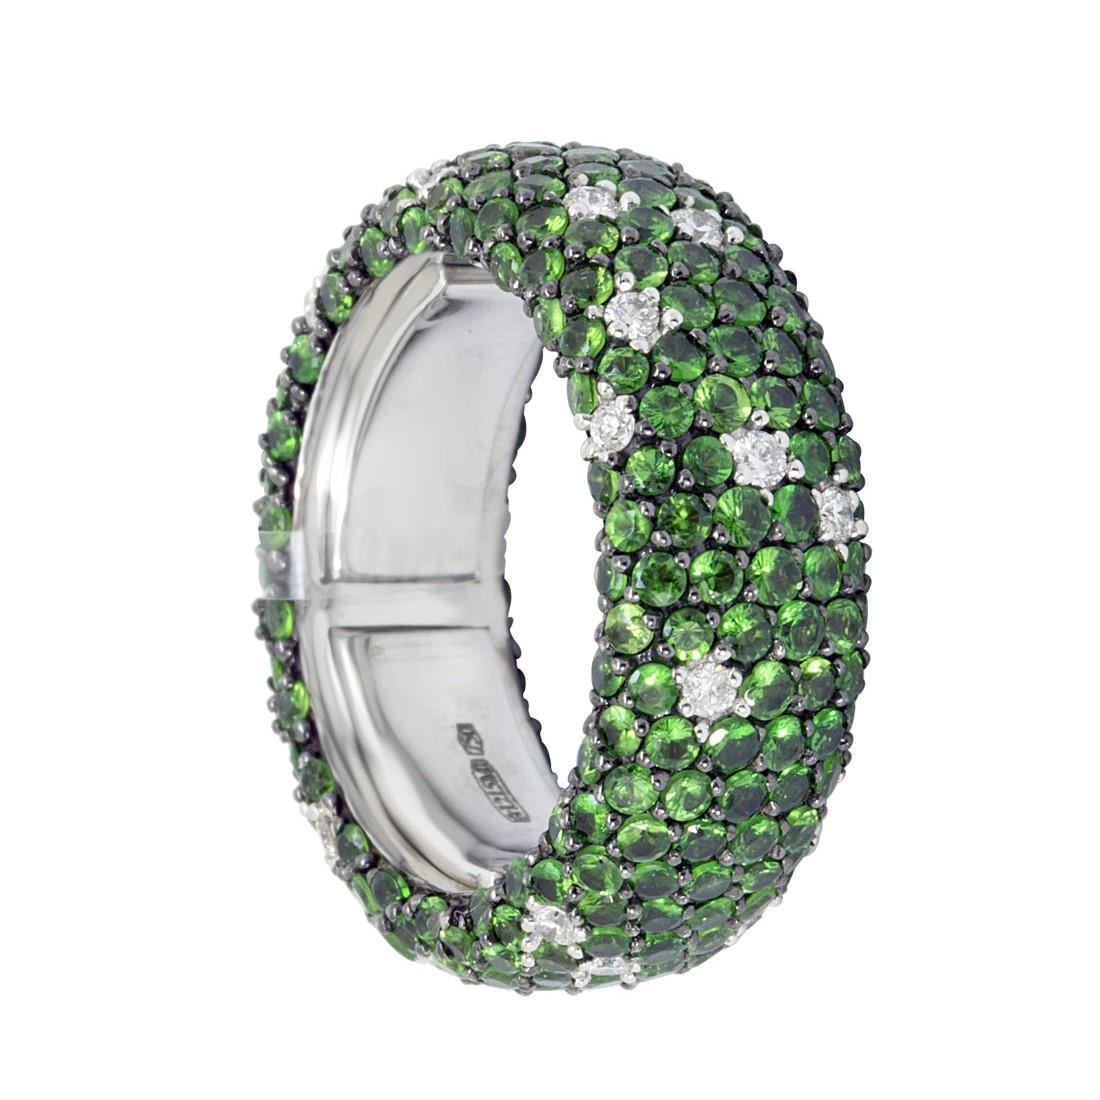 Anello eternity in oro bianco con diamanti ct 0.56 e tsavorite ct 5.36 - ALFIERI ST JOHN